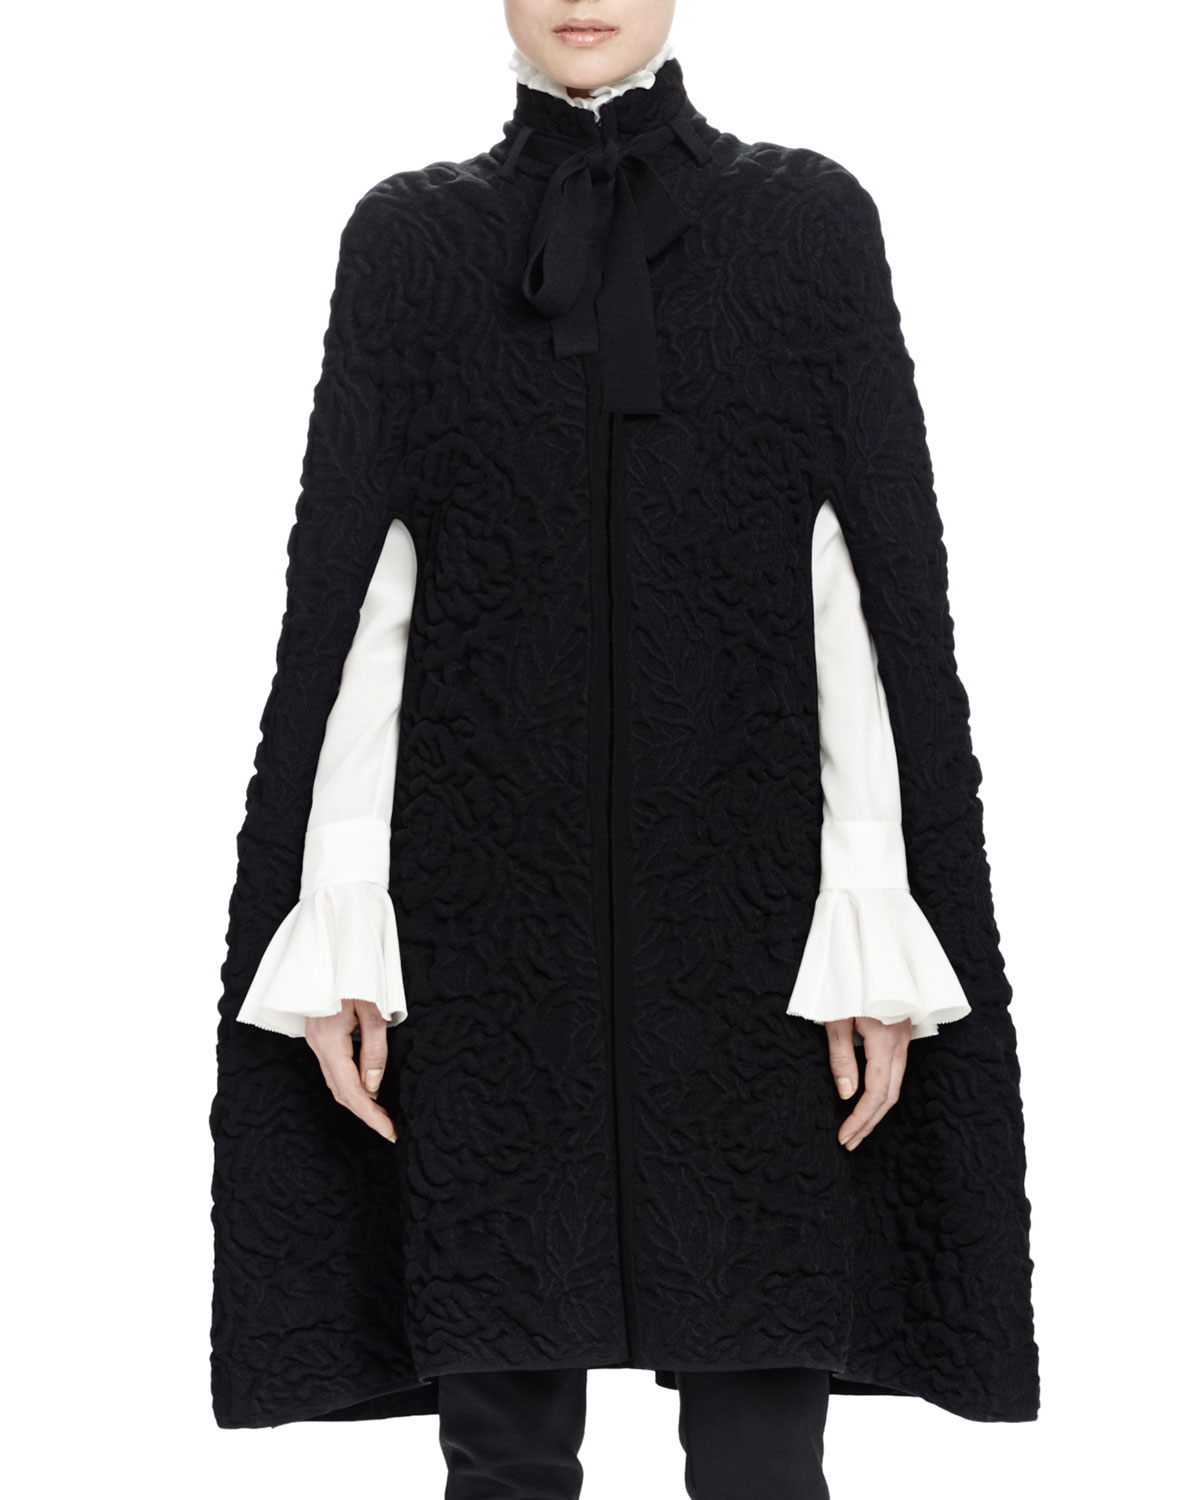 Knitting Pattern Chunky Cape : Alexander mcqueen Chunky Quilted-knit Long Cape in Black Lyst